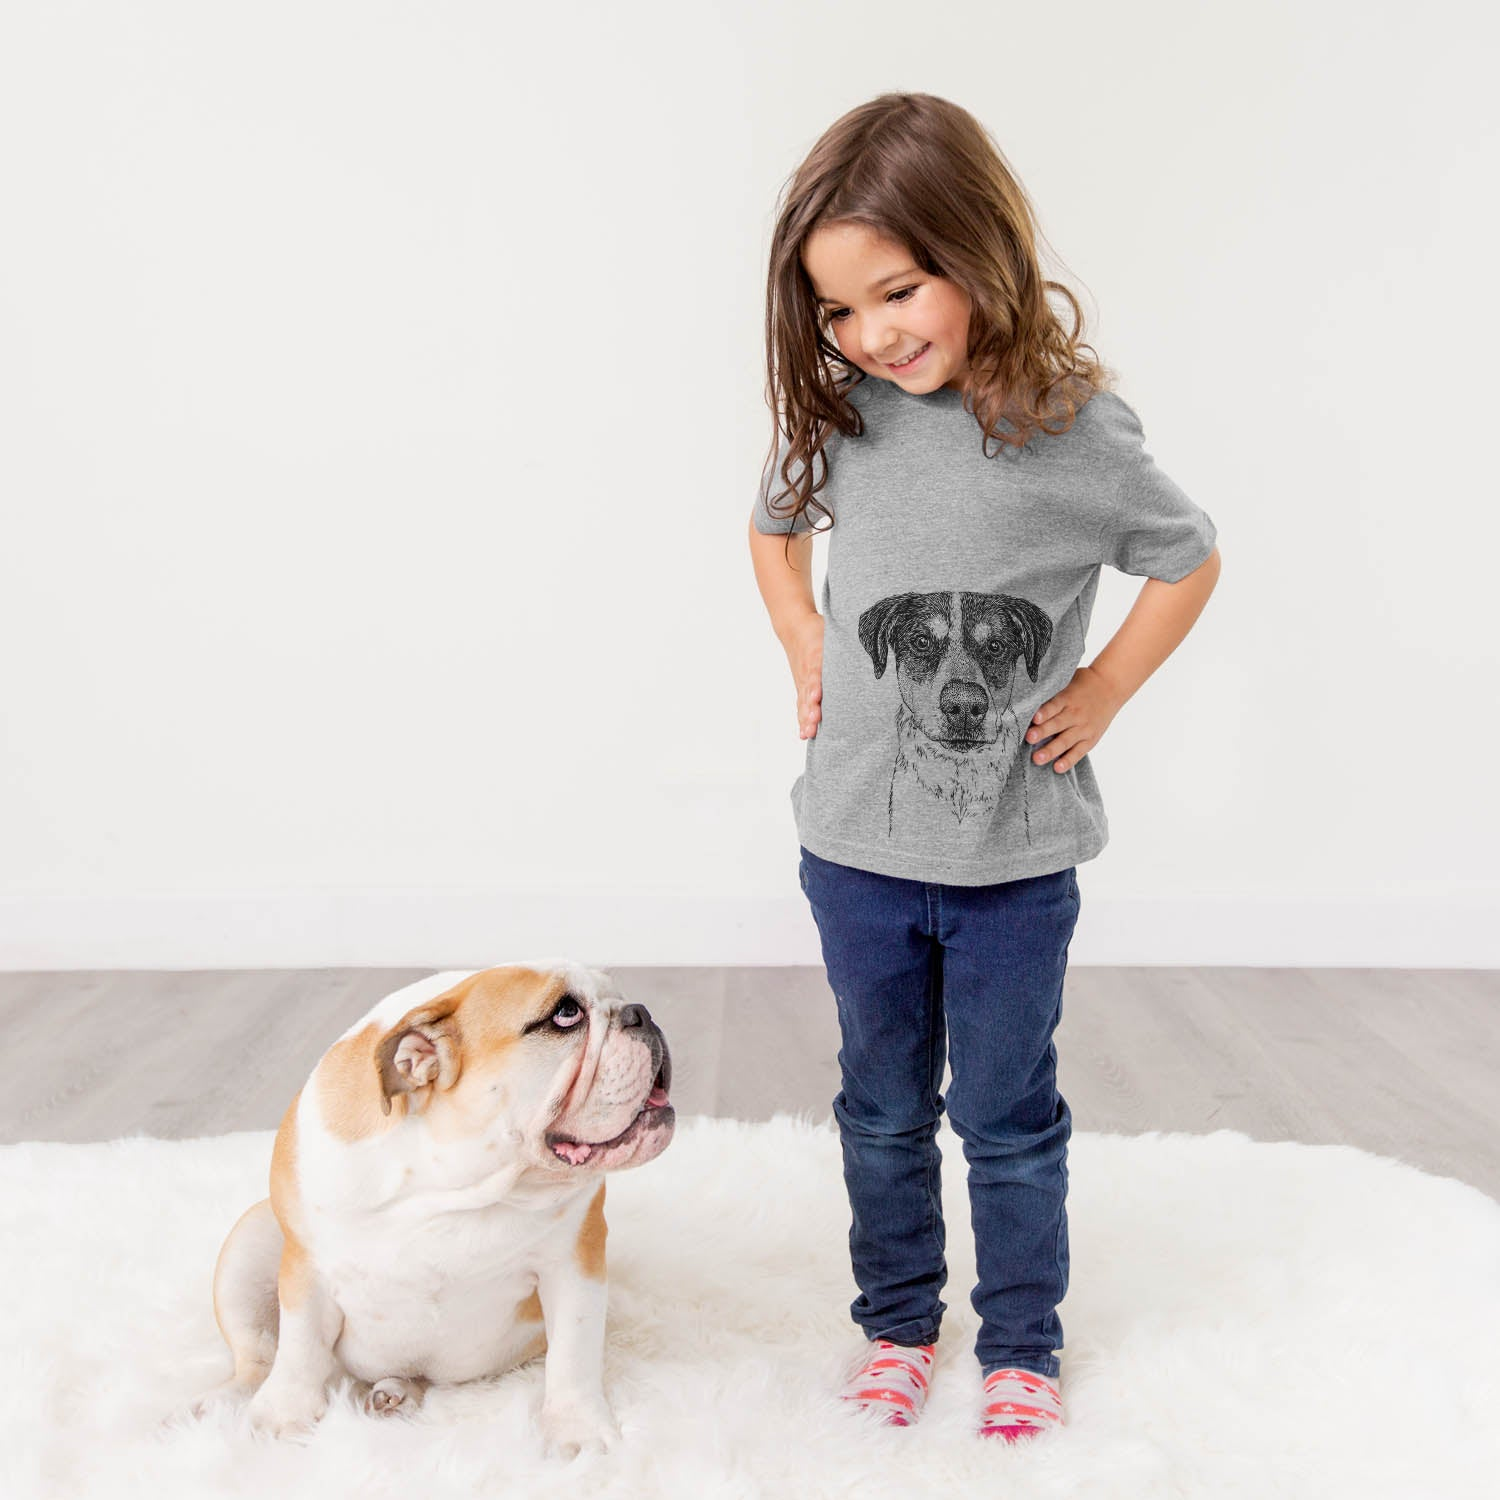 Gertrude the Mixed Breed - Kids/Youth/Toddler Shirt